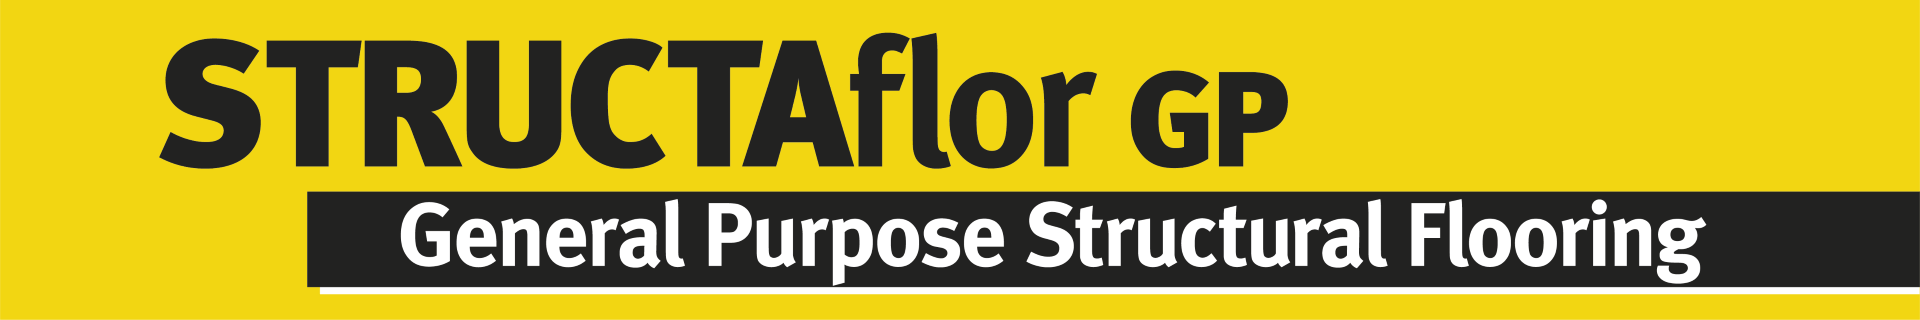 STRUCTAflor GP General Purpose